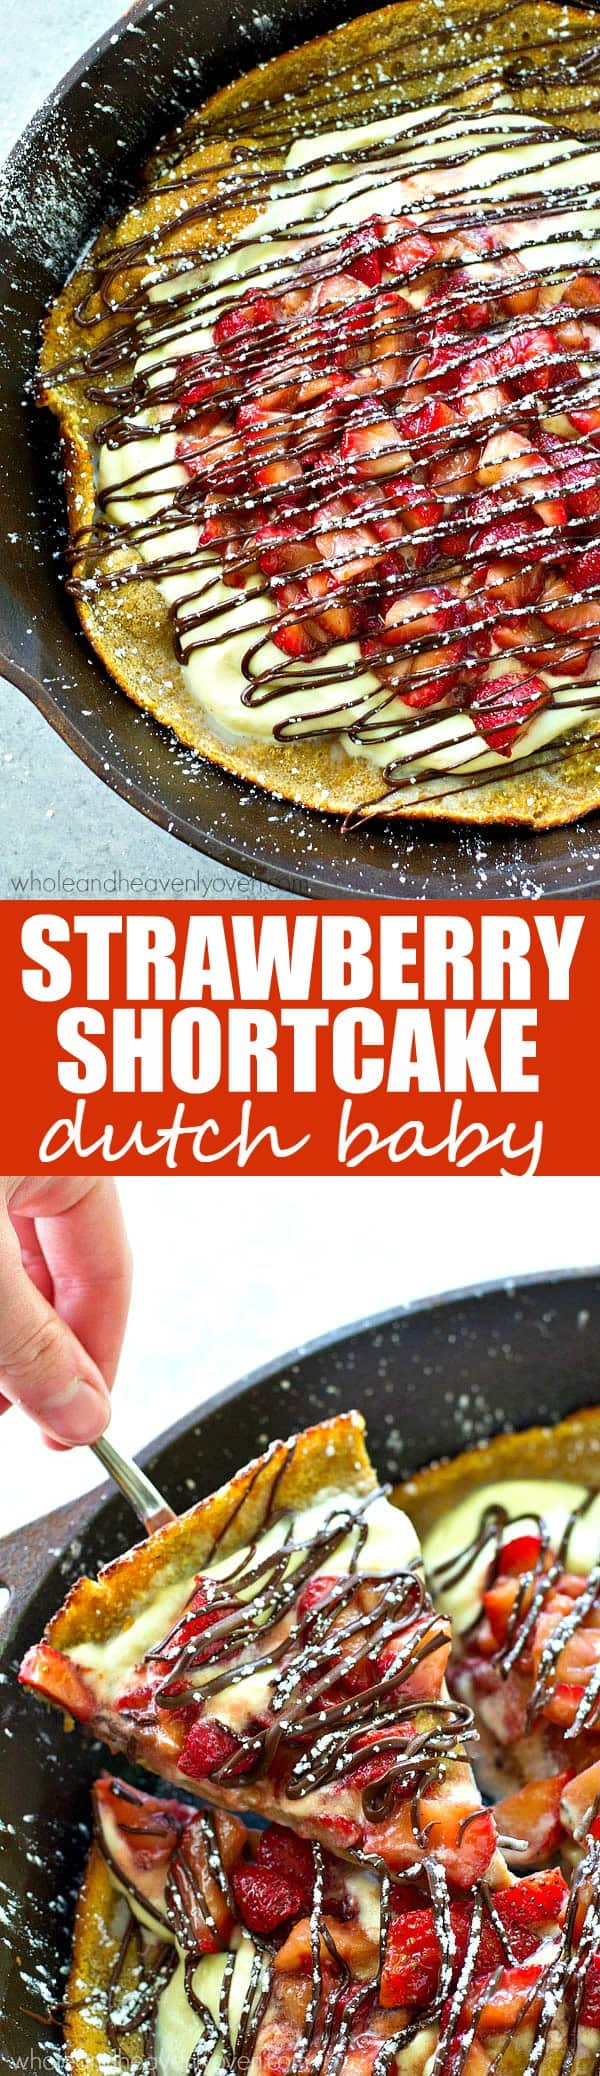 You'll NEVER have a breakfast more fun than this summertime dutch baby! Juicy strawberries, whipped cream, and plenty of melted chocolate piled inside make it a fun spin off of strawberry shortcake!